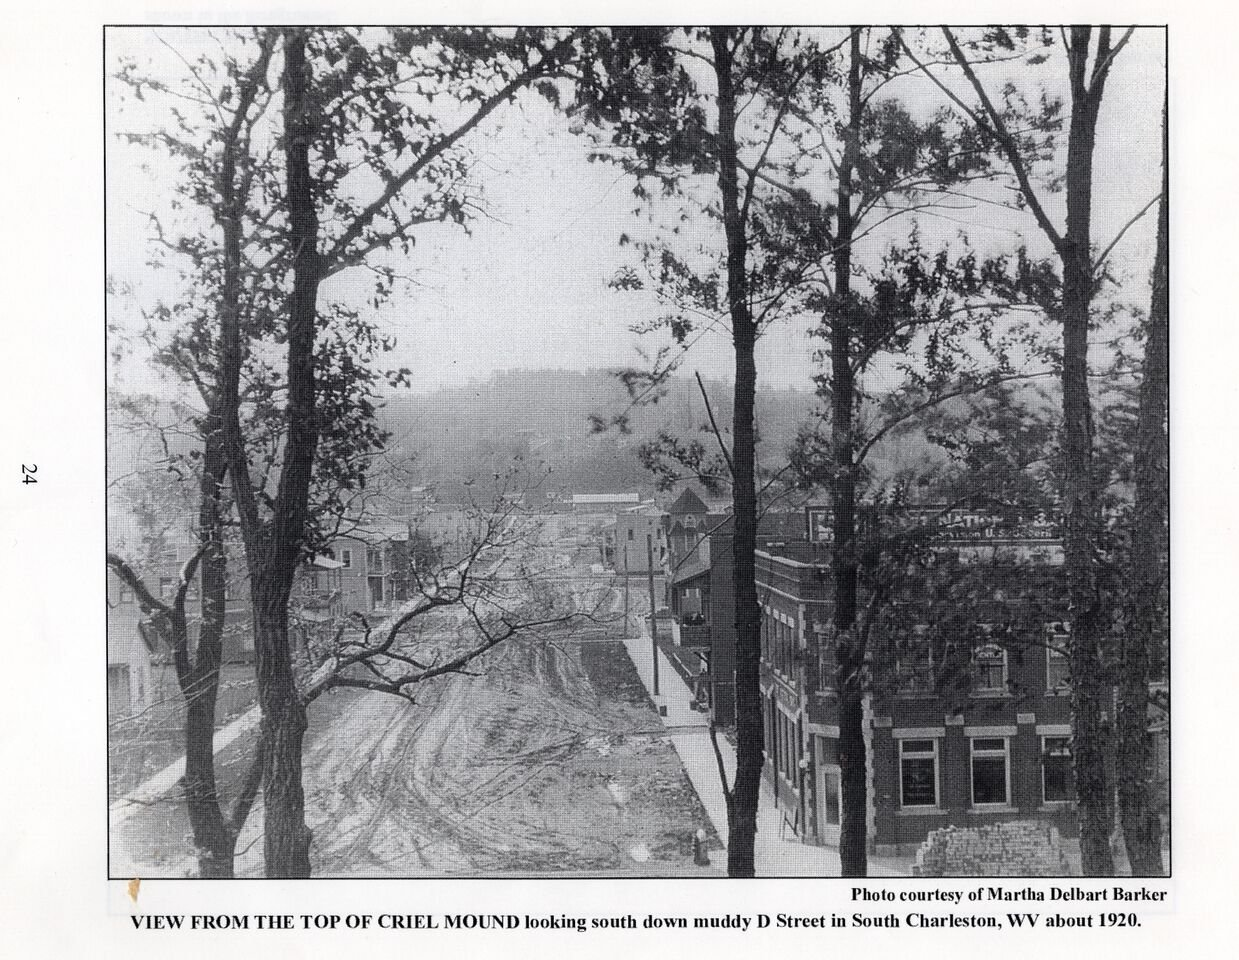 View up D Street (toward present-day City Hall) from the top of the Criel Mound, circa 1920. Not always well preserved,in 1840 the top of the Mound was leveled off to accommodate a judges' stand for a racetrack that encircled the Mound's base,